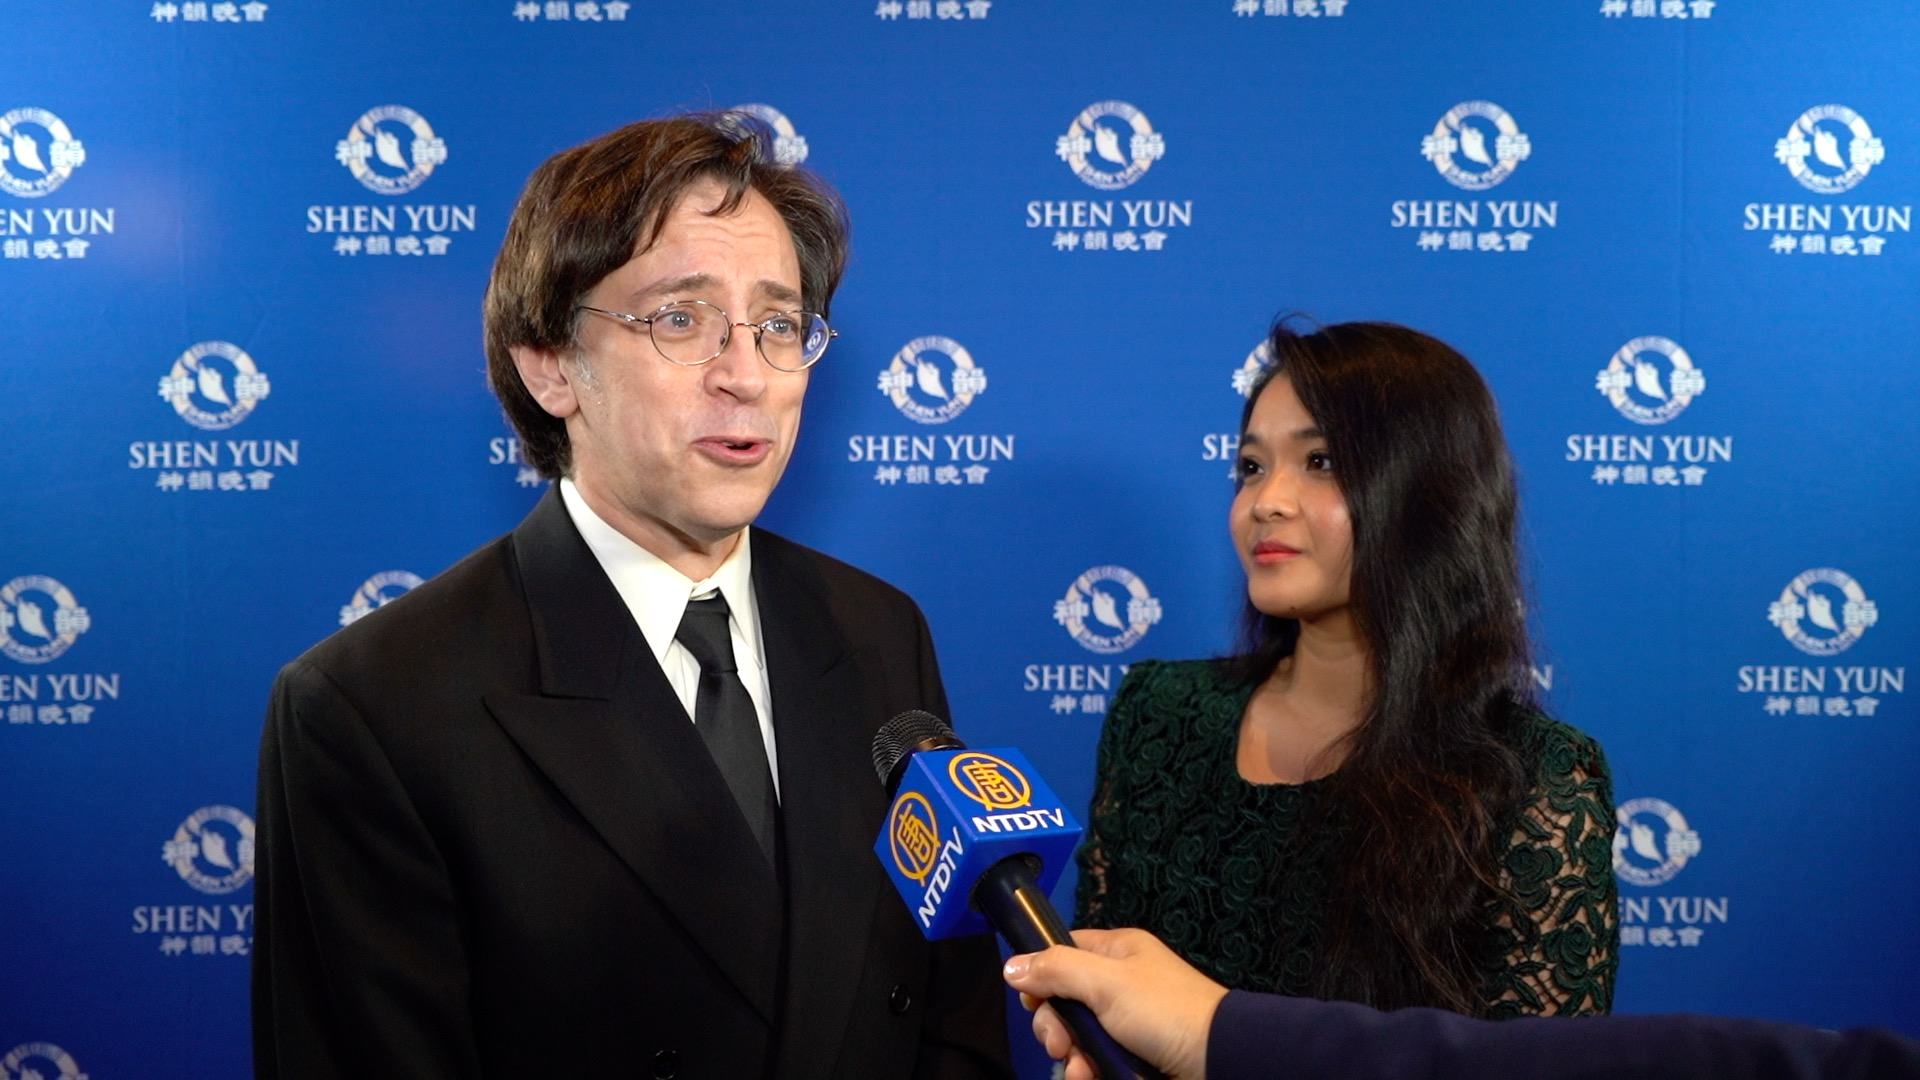 NYT Best-Selling Author: Shen Yun is 'Hopeful and Powerful'